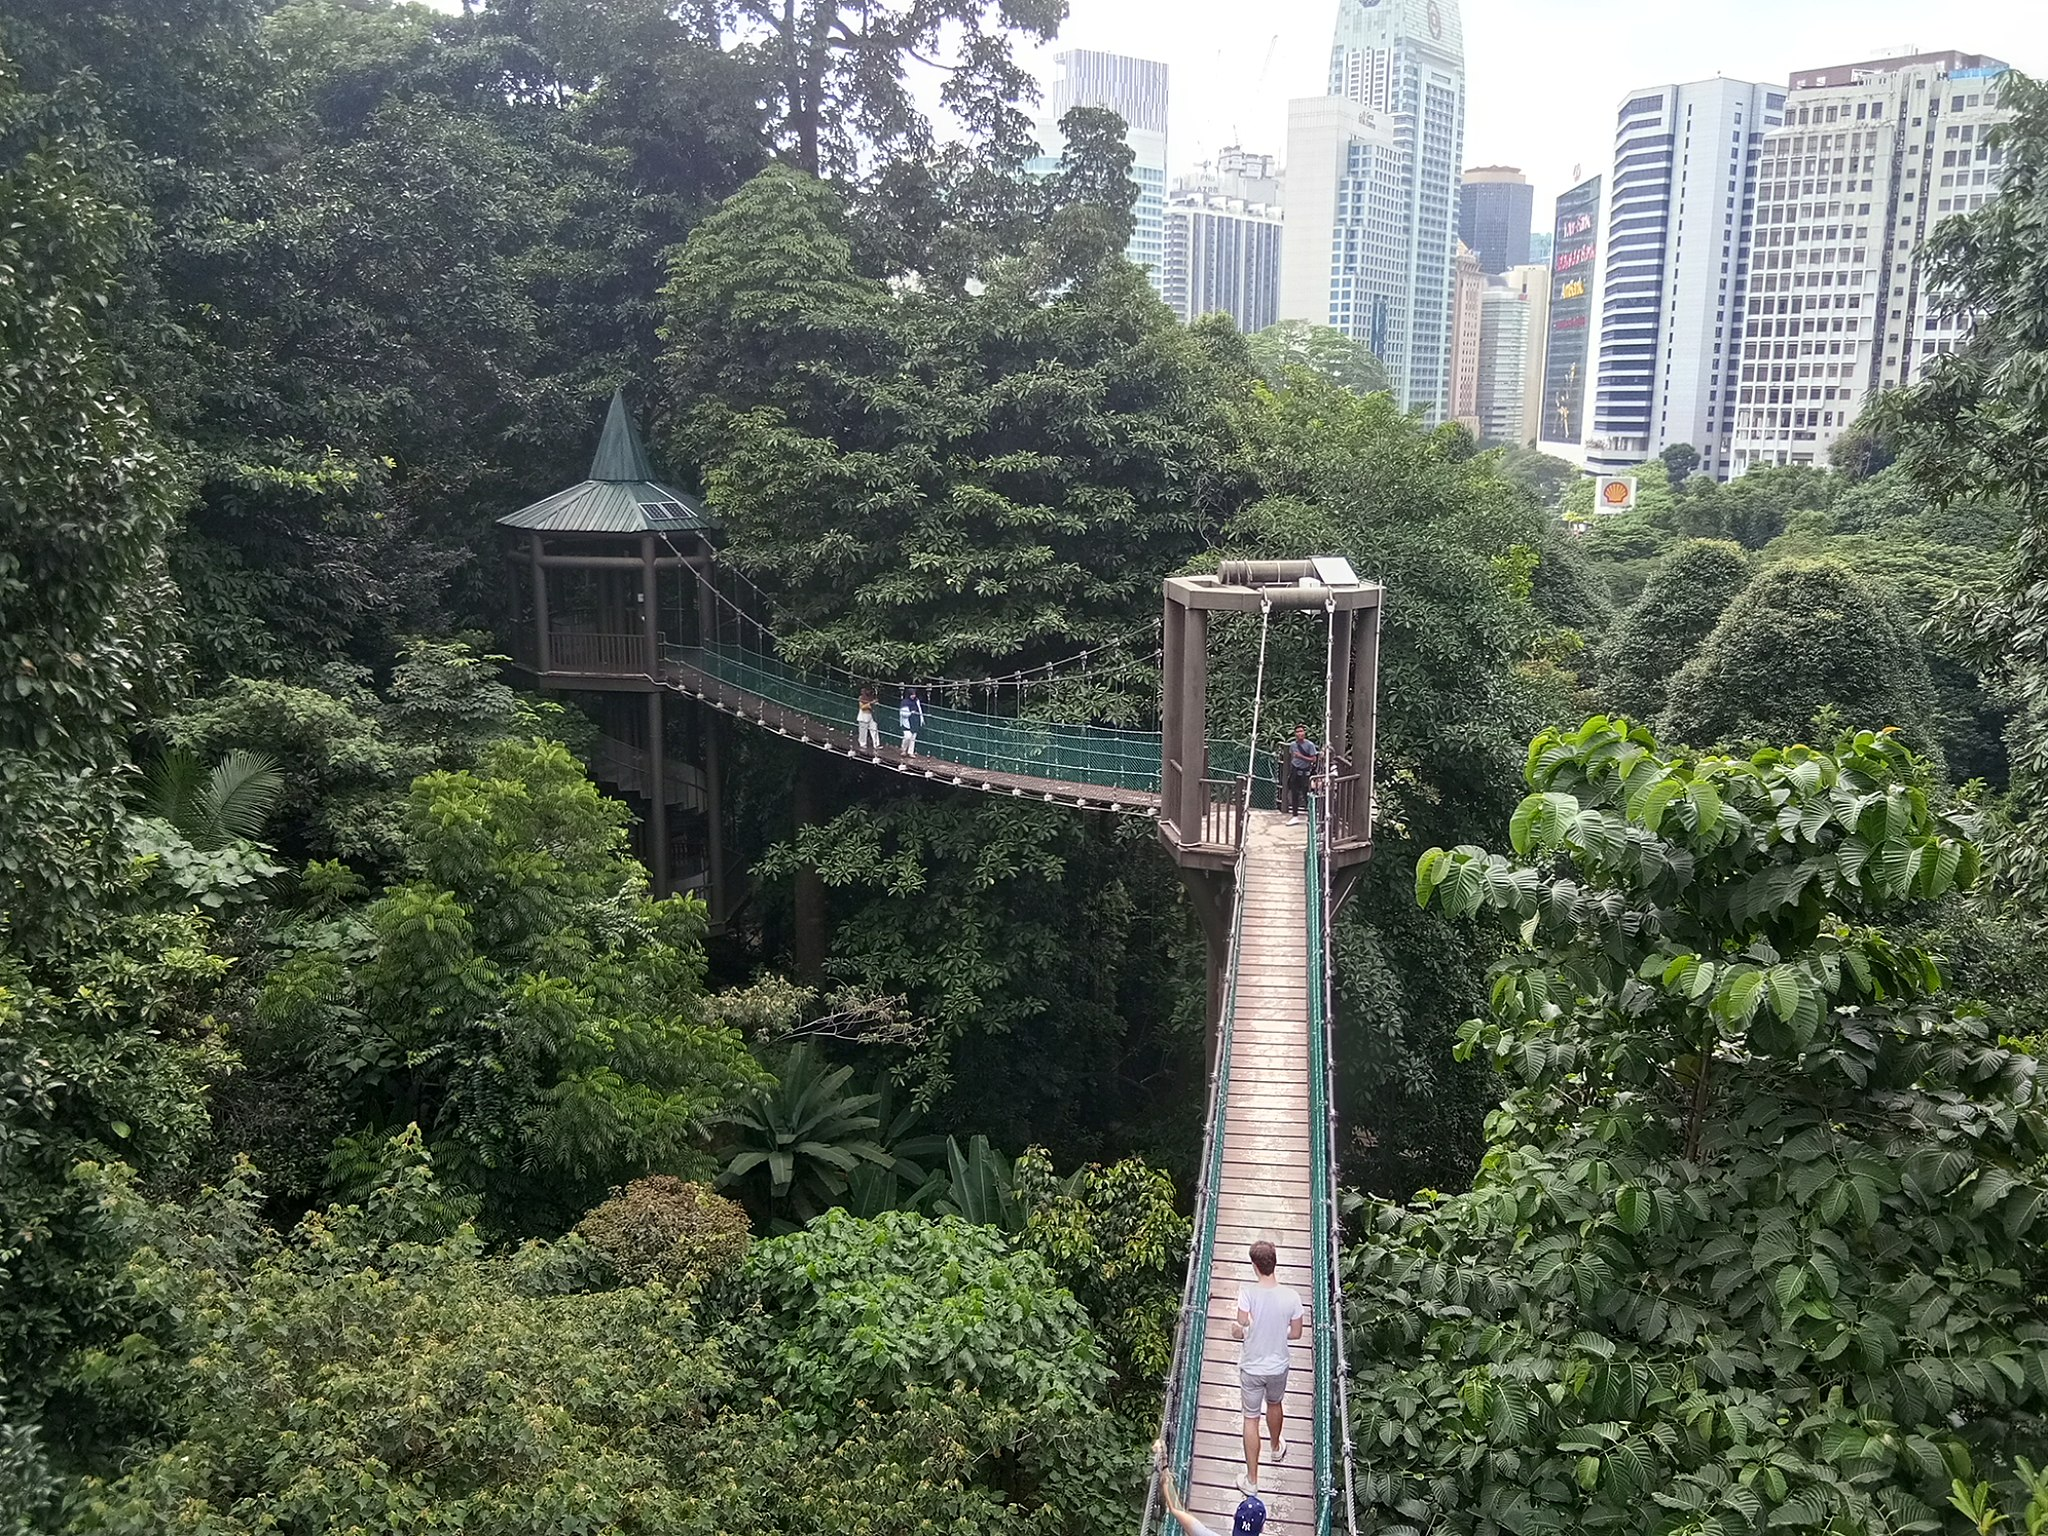 Canopy Walk at the KL Forest Eco Park during the day.